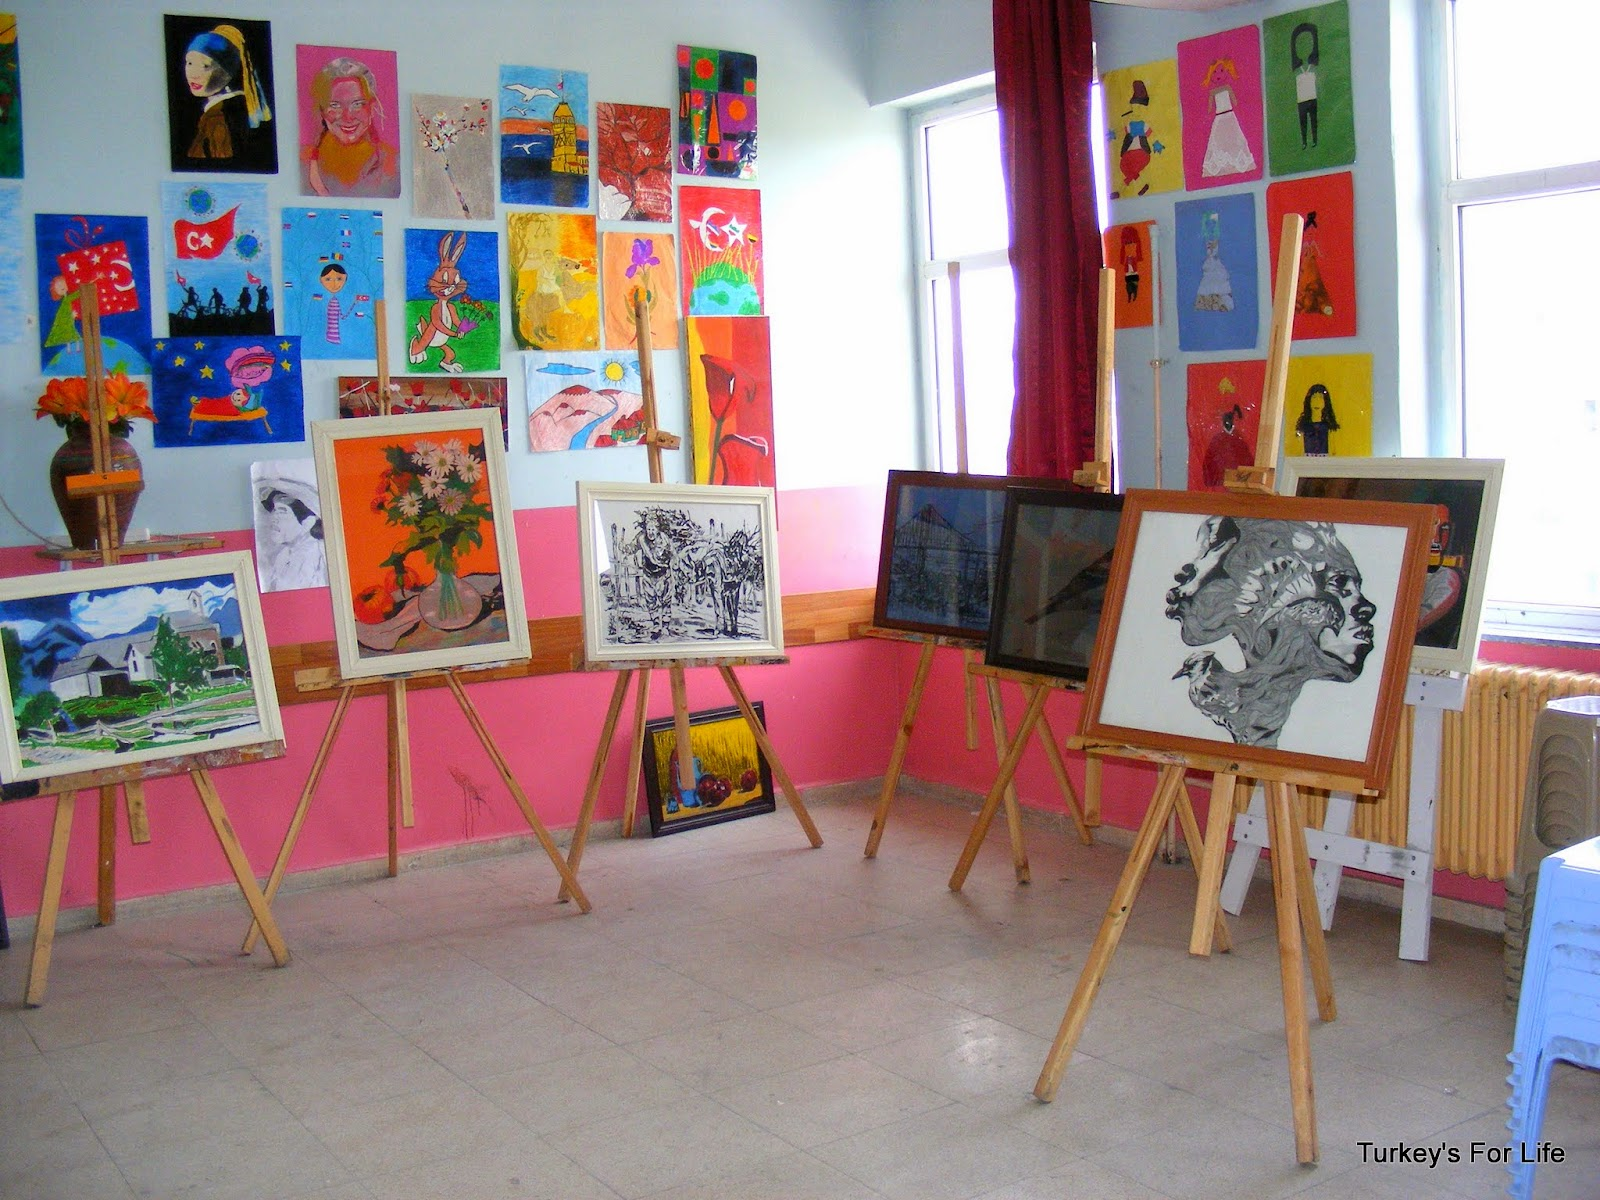 Children's Artwork, Doğansu, Agrı, East Turkey